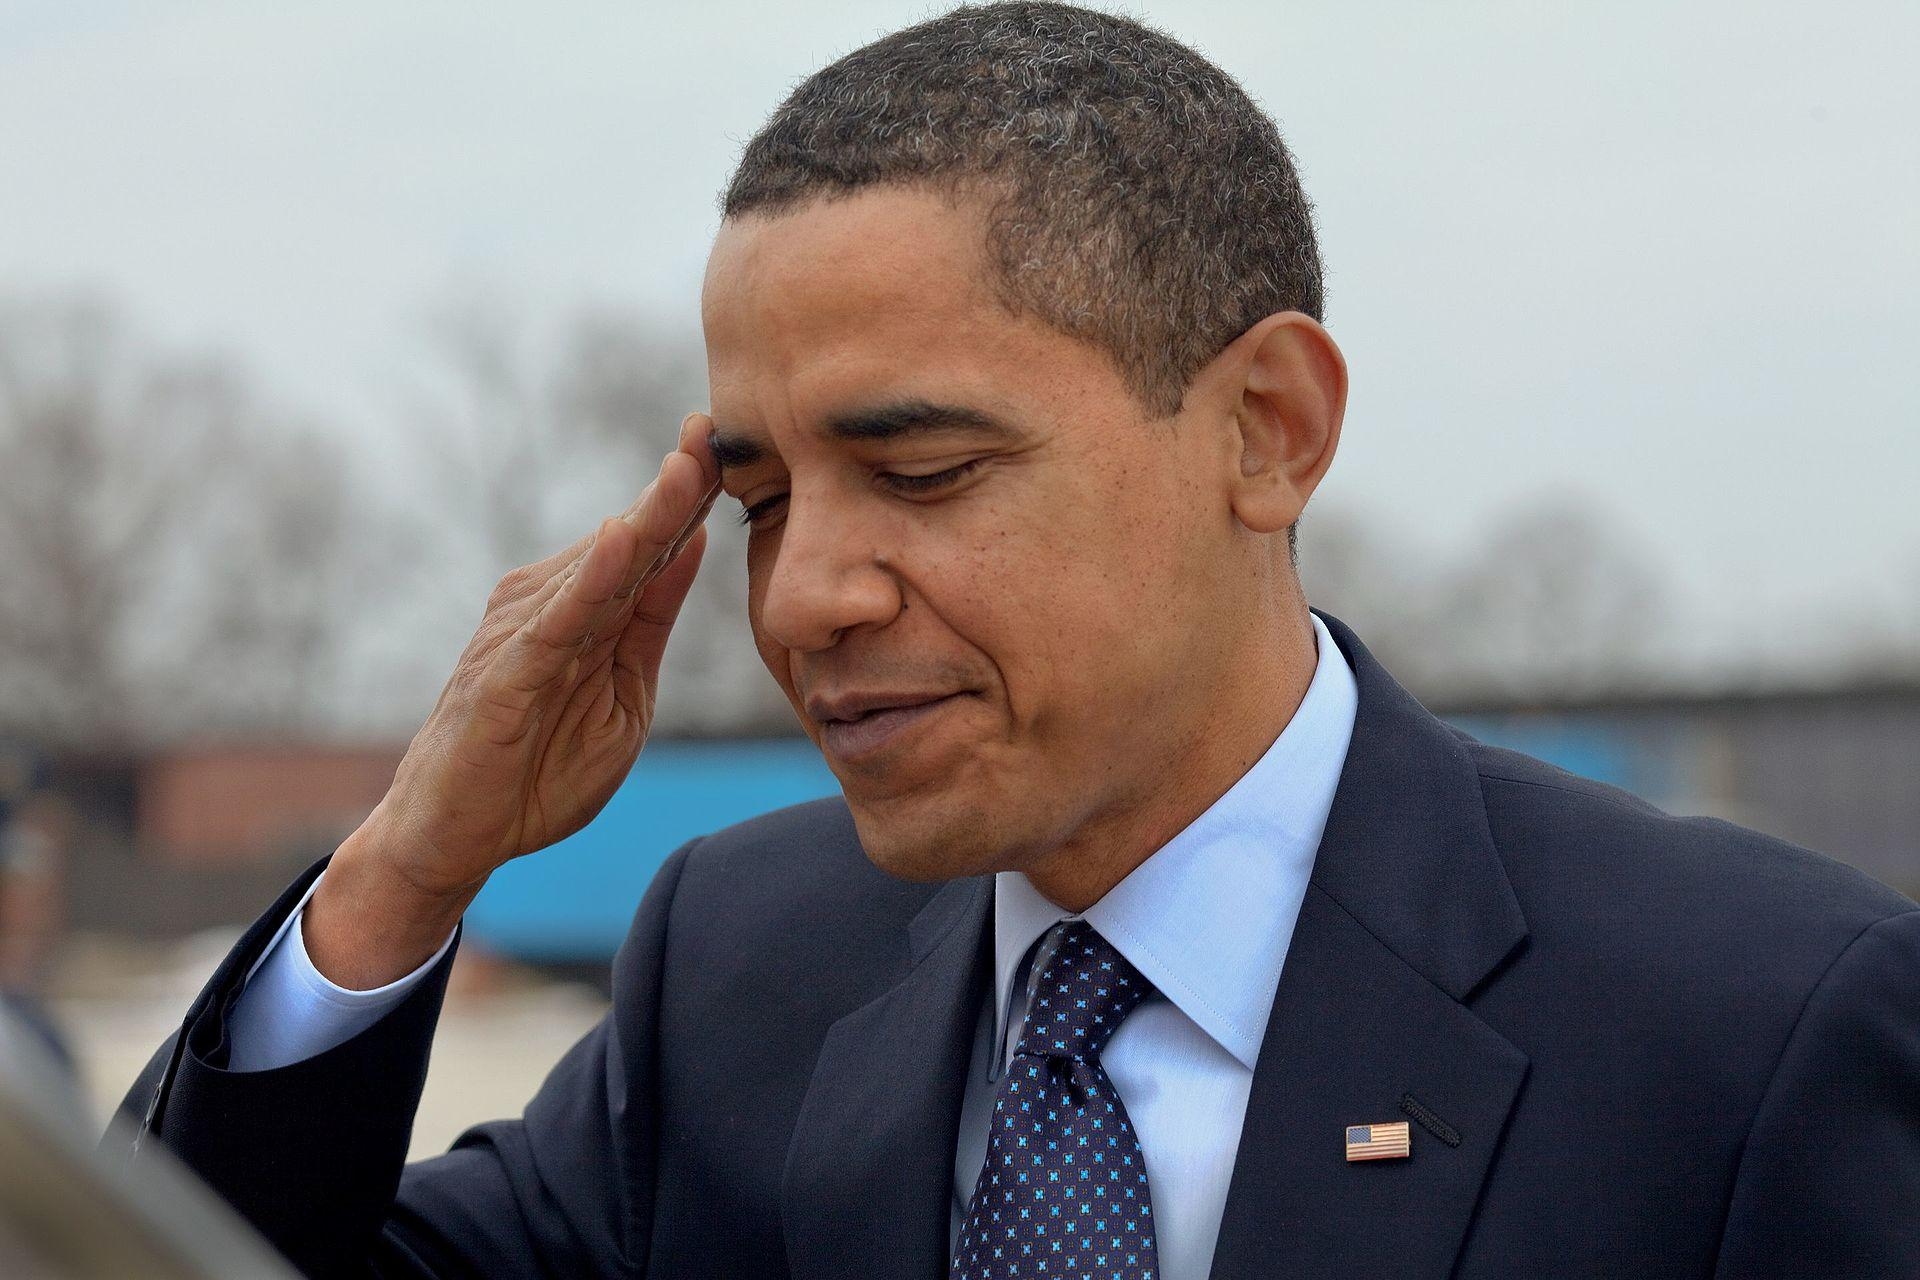 barack obama birthday sign ; president_barack_obama_salutes_at_andrews_air_force_base_before_departing_for_columbus__ohio